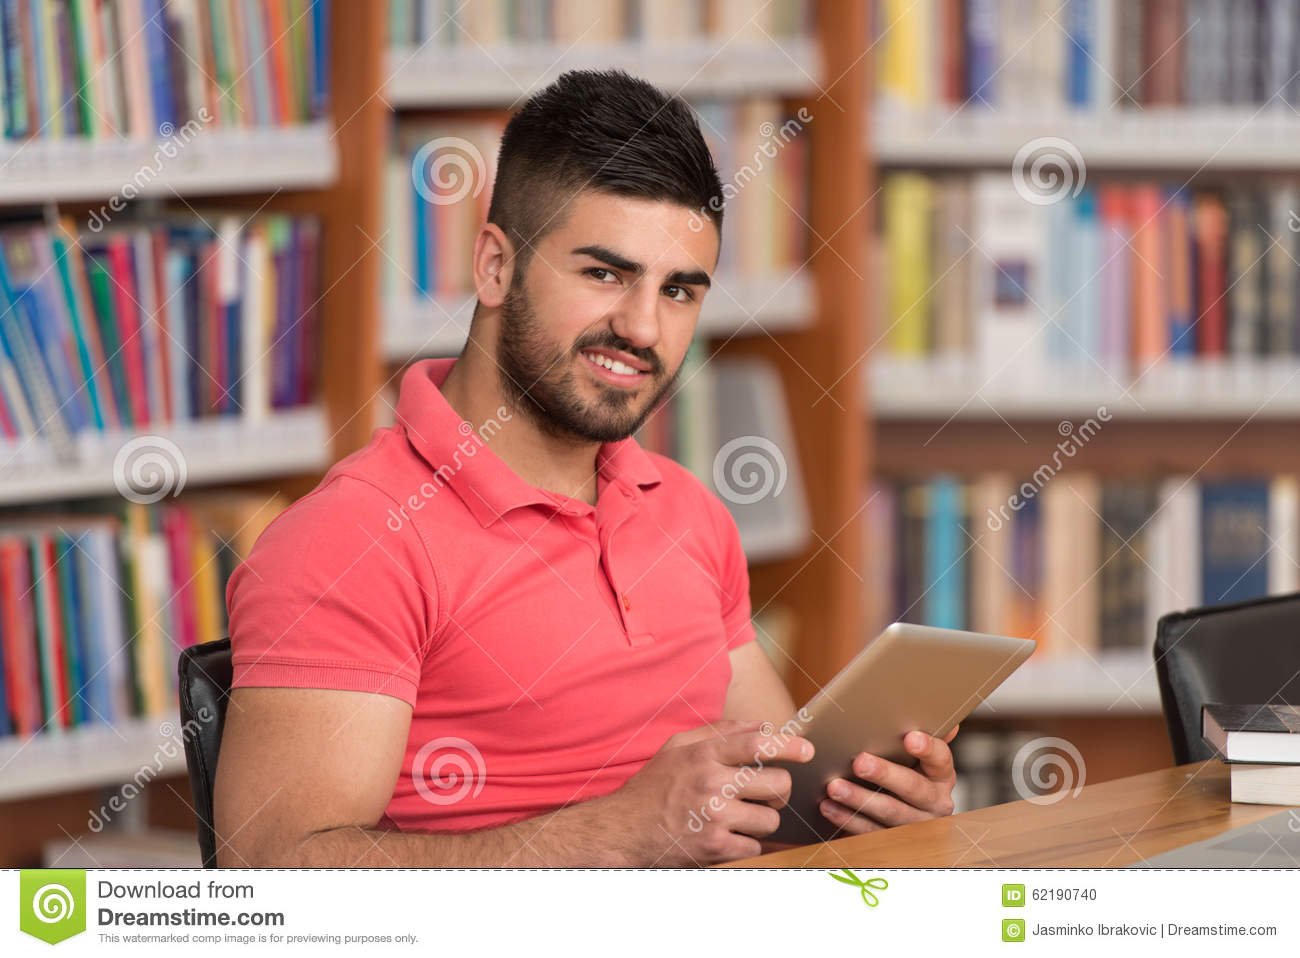 local literature of working student College student employment on academic achievement  literature reviewed below examines how employment has  29% of the students working 30-39 hours per week and.